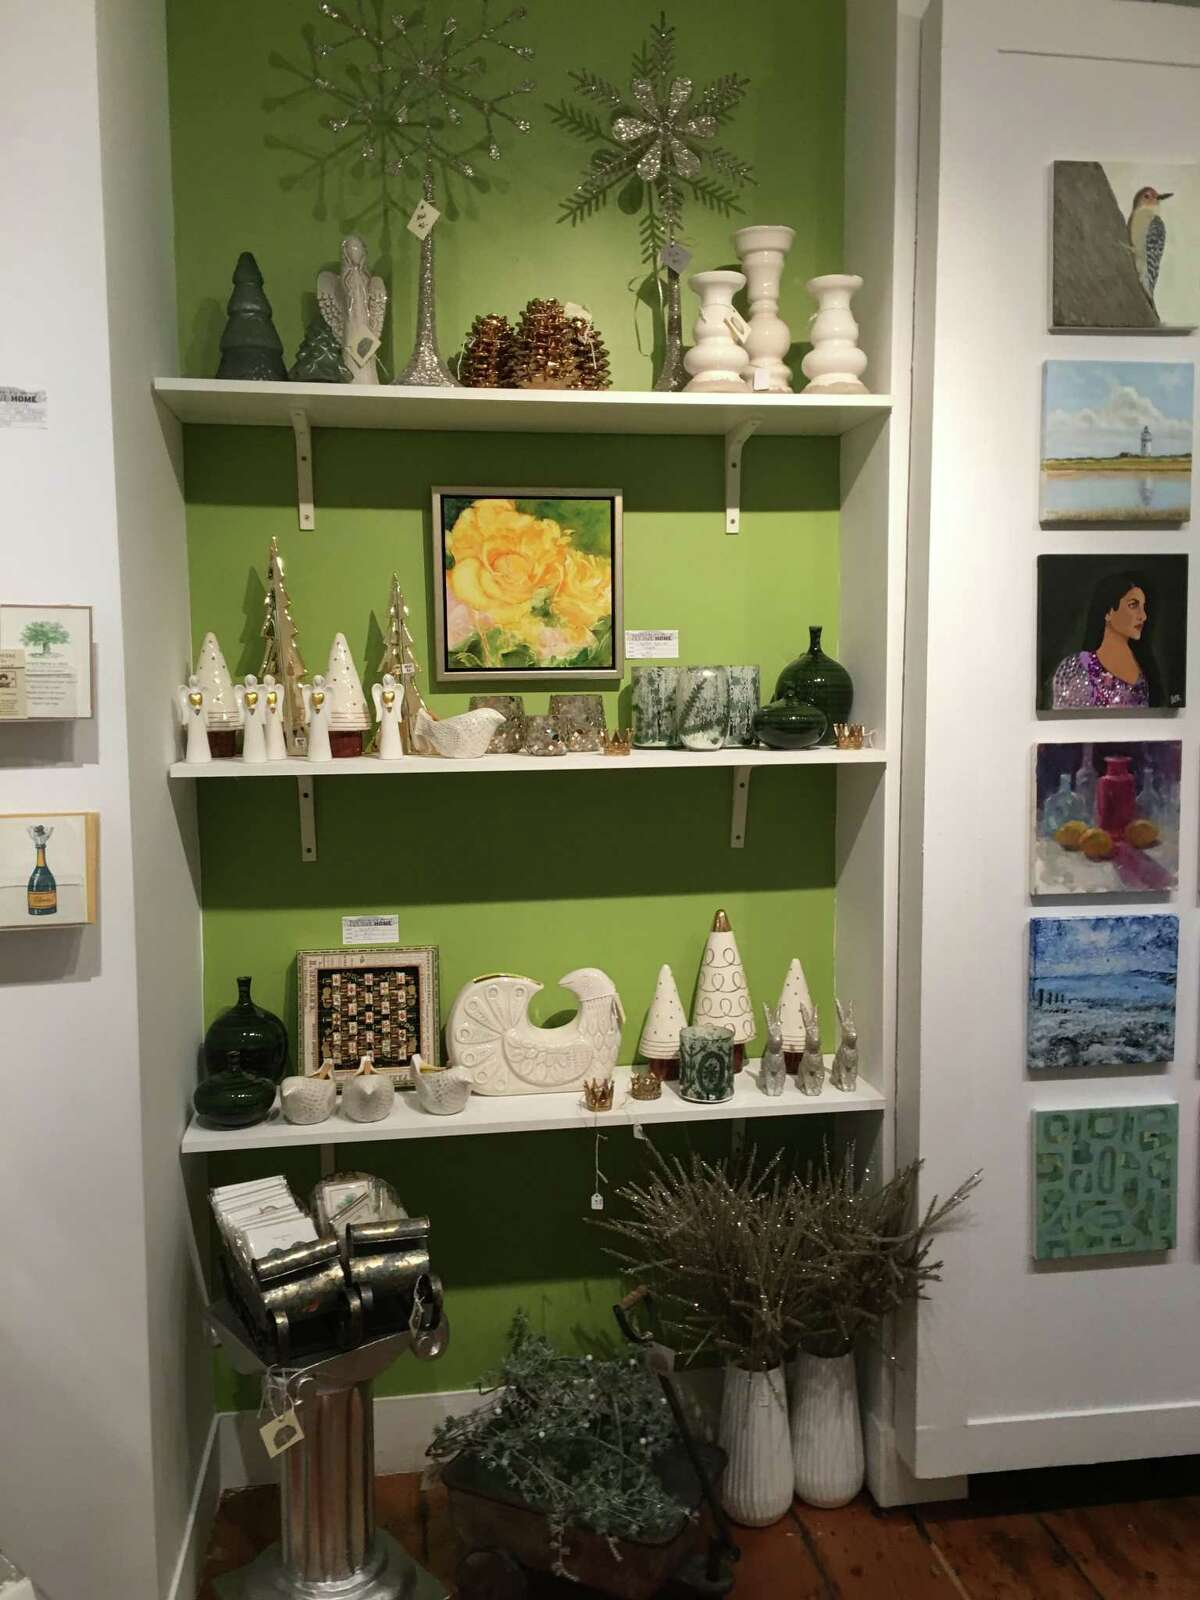 A small peek of what's in store when you visit Festive Home 2019 at Ridgefield Guild of Artists.